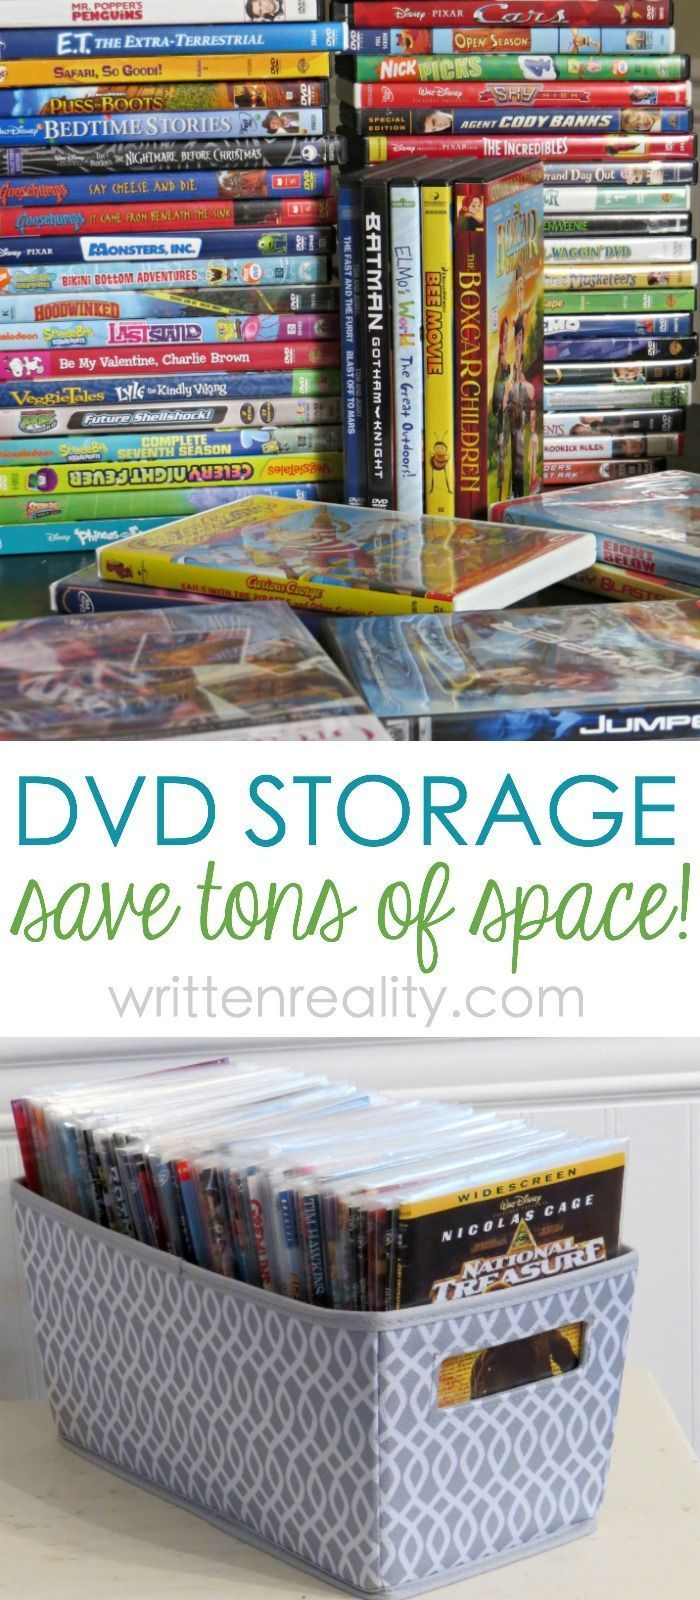 Best DVD Storage Solution For Easy Organization | DIY Home Decor Ideas |  Pinterest | Dvd Storage Solutions, Dvd Organization And Dvd Storage